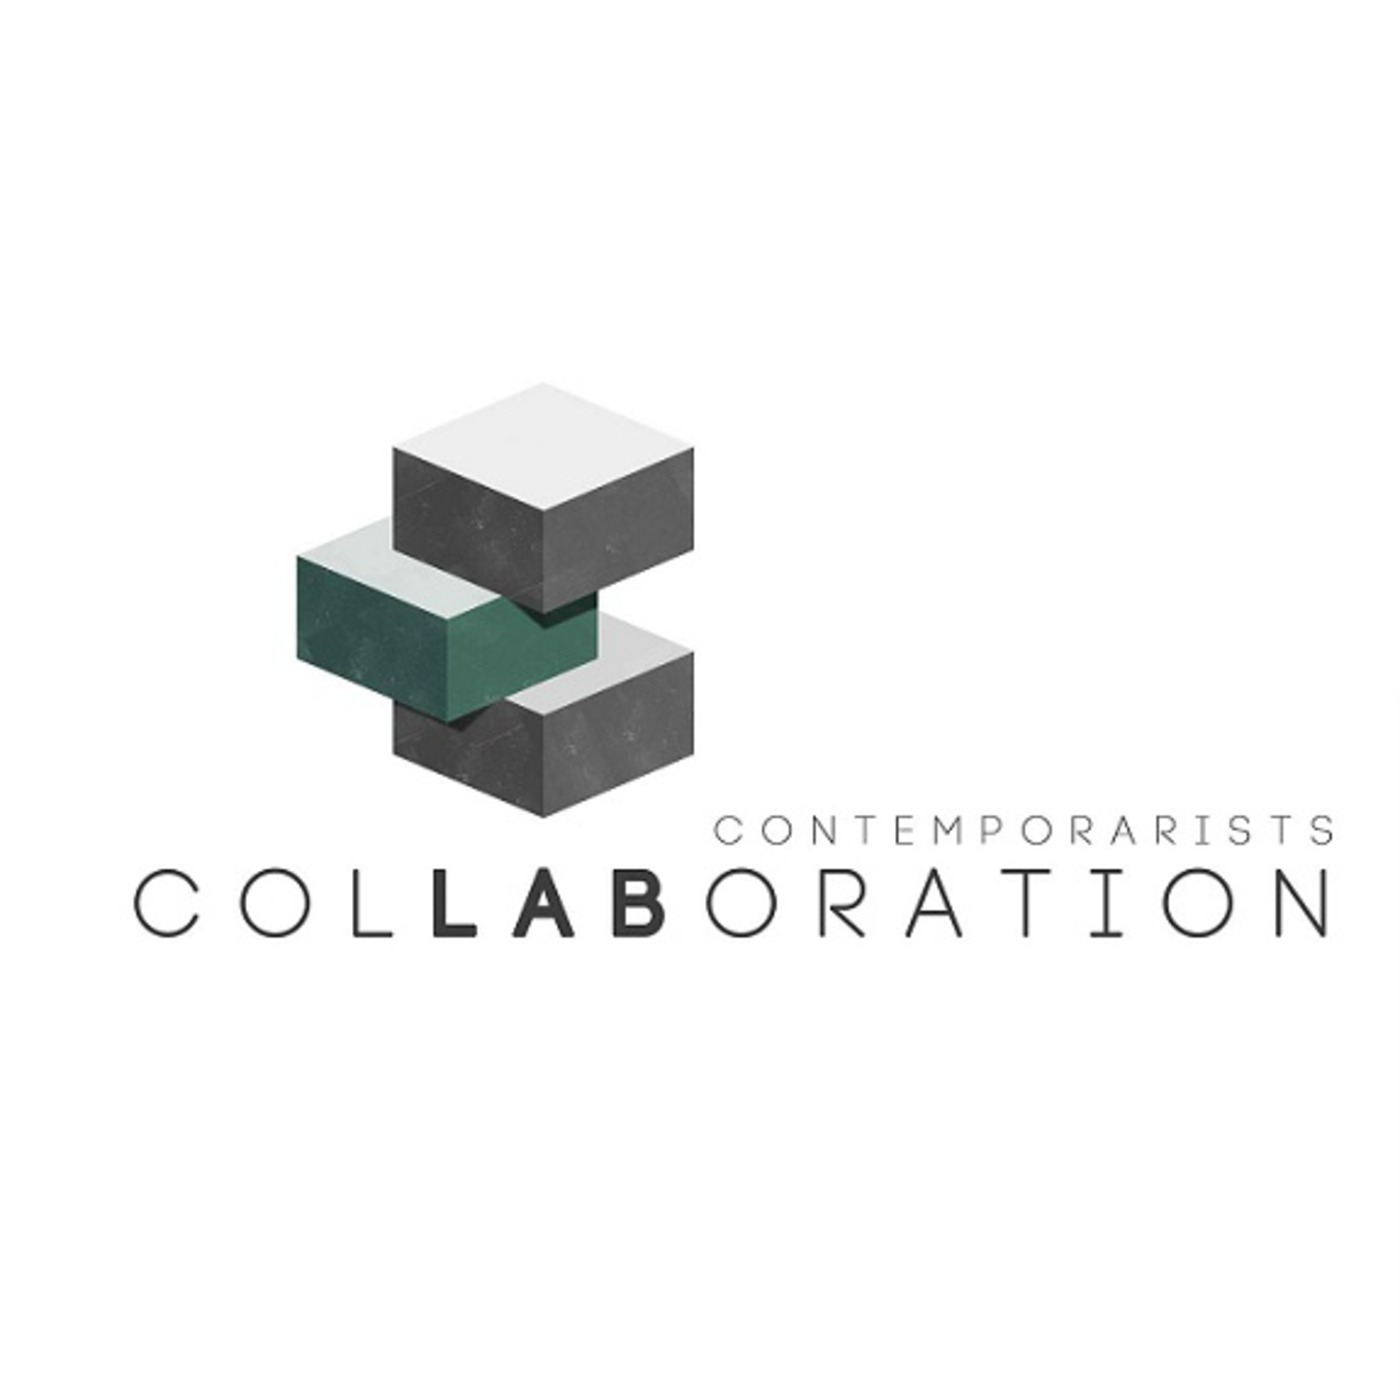 Contemporists Collaboration